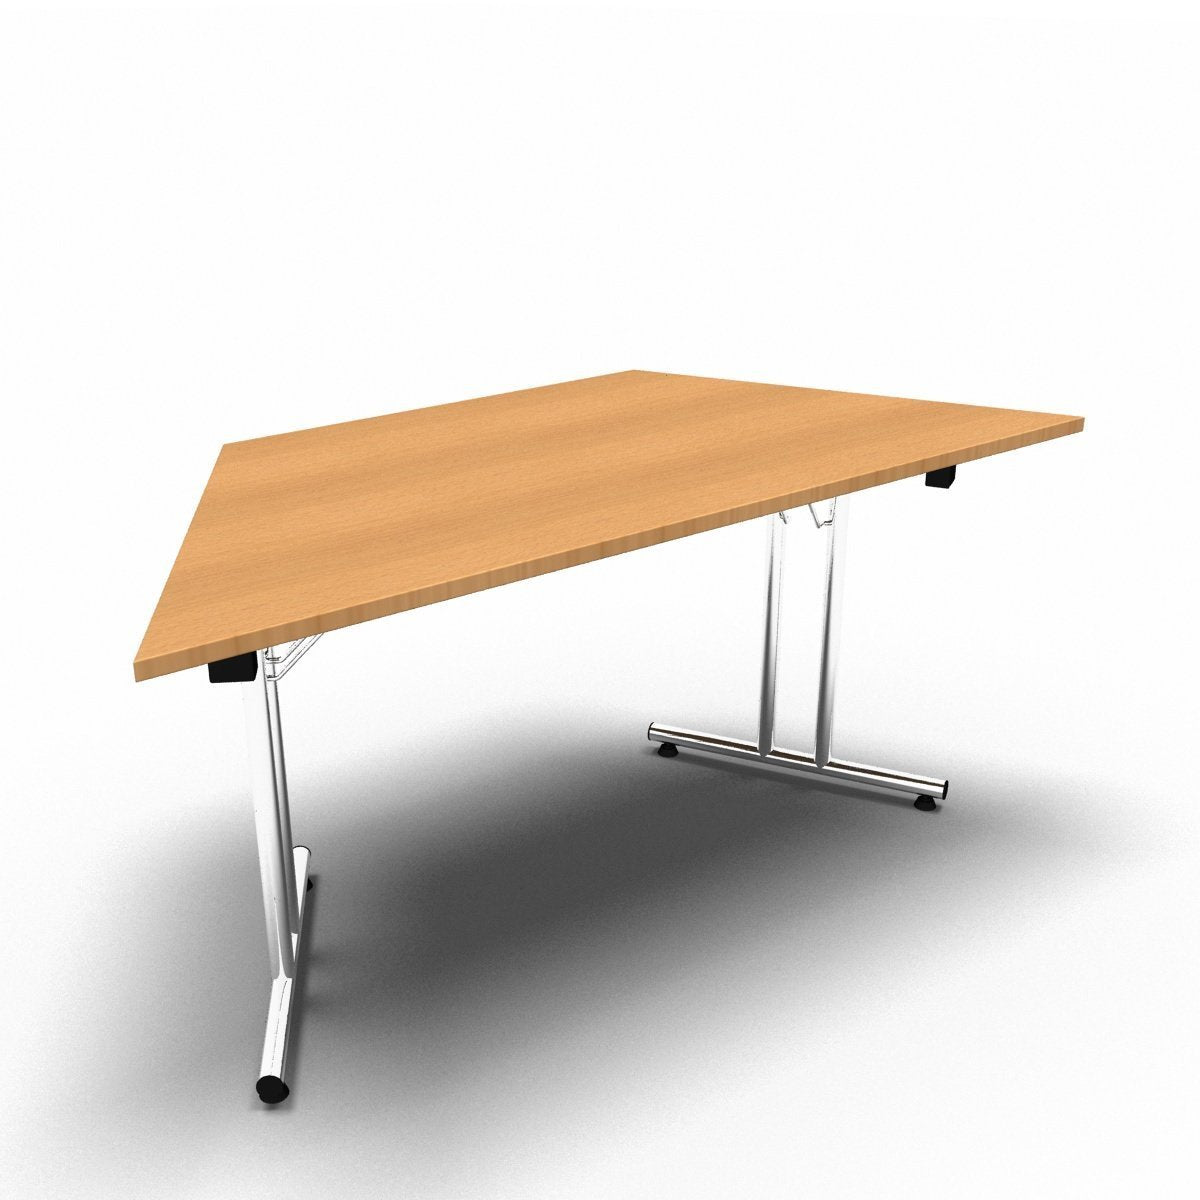 Table 1600 x 800 x 730mm / Trapezoidal / Beech Synergy Folding Tables